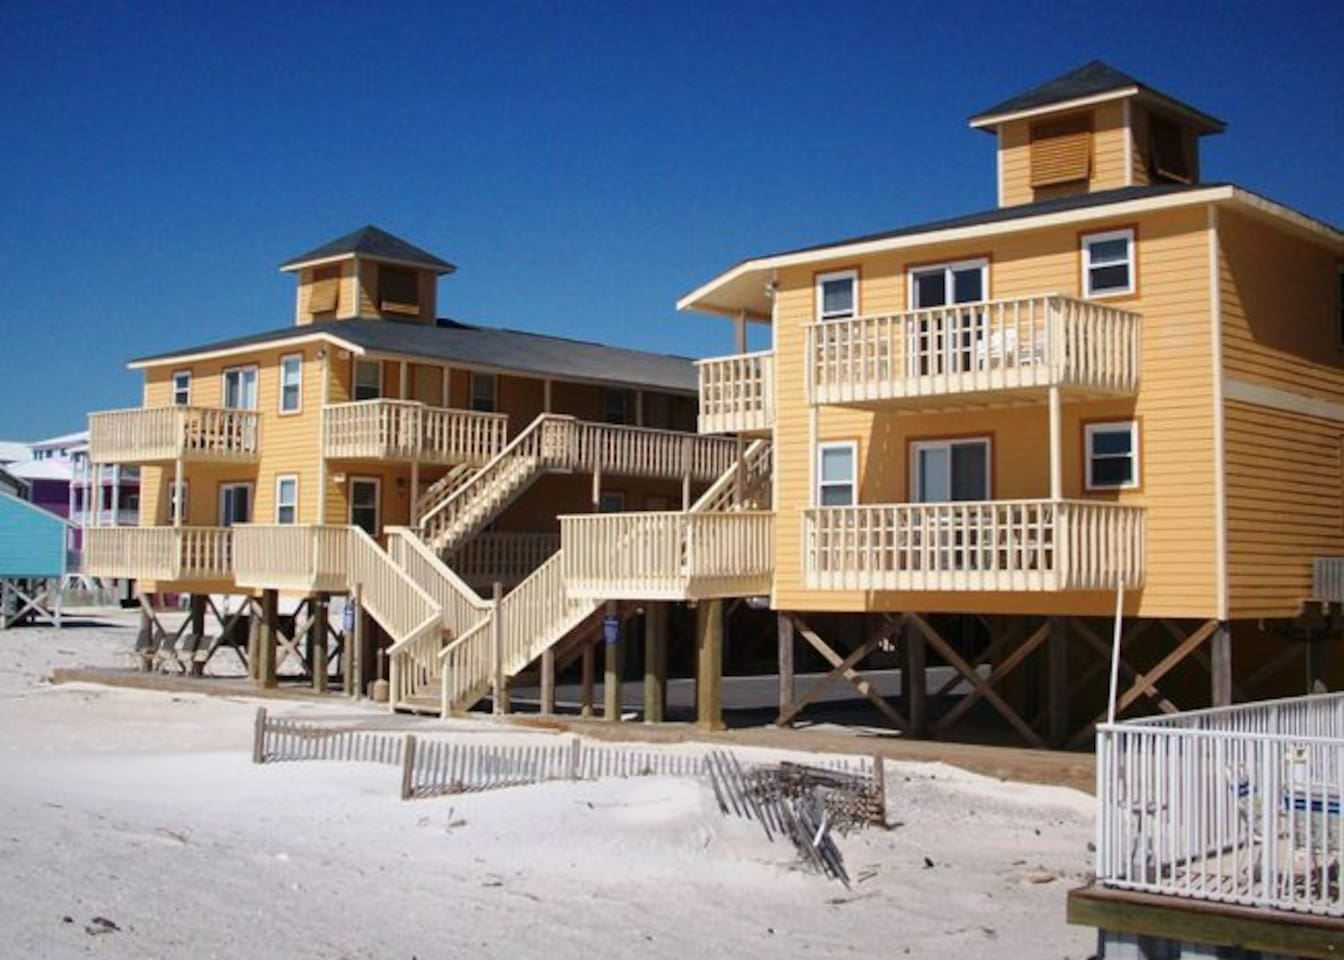 View of Sunrise Village complex from the beach.